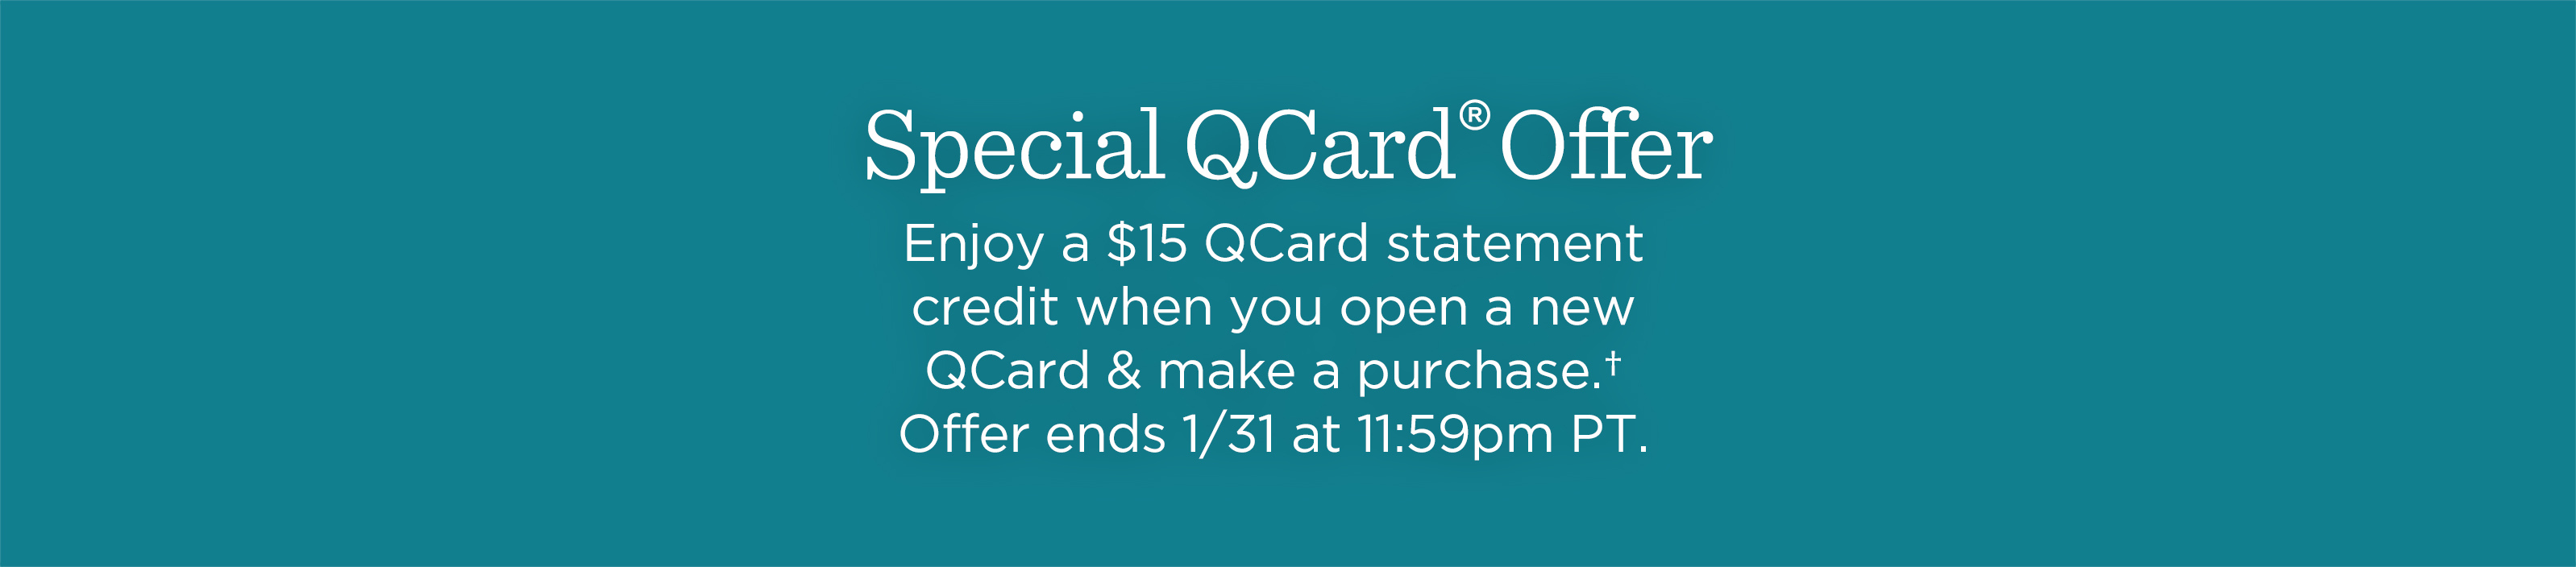 Special QCard® Offer. Enjoy a $15 QCard statement credit when you open a new QCard & make a purchase.† Offer ends 1/31 at 11:59pm PT.